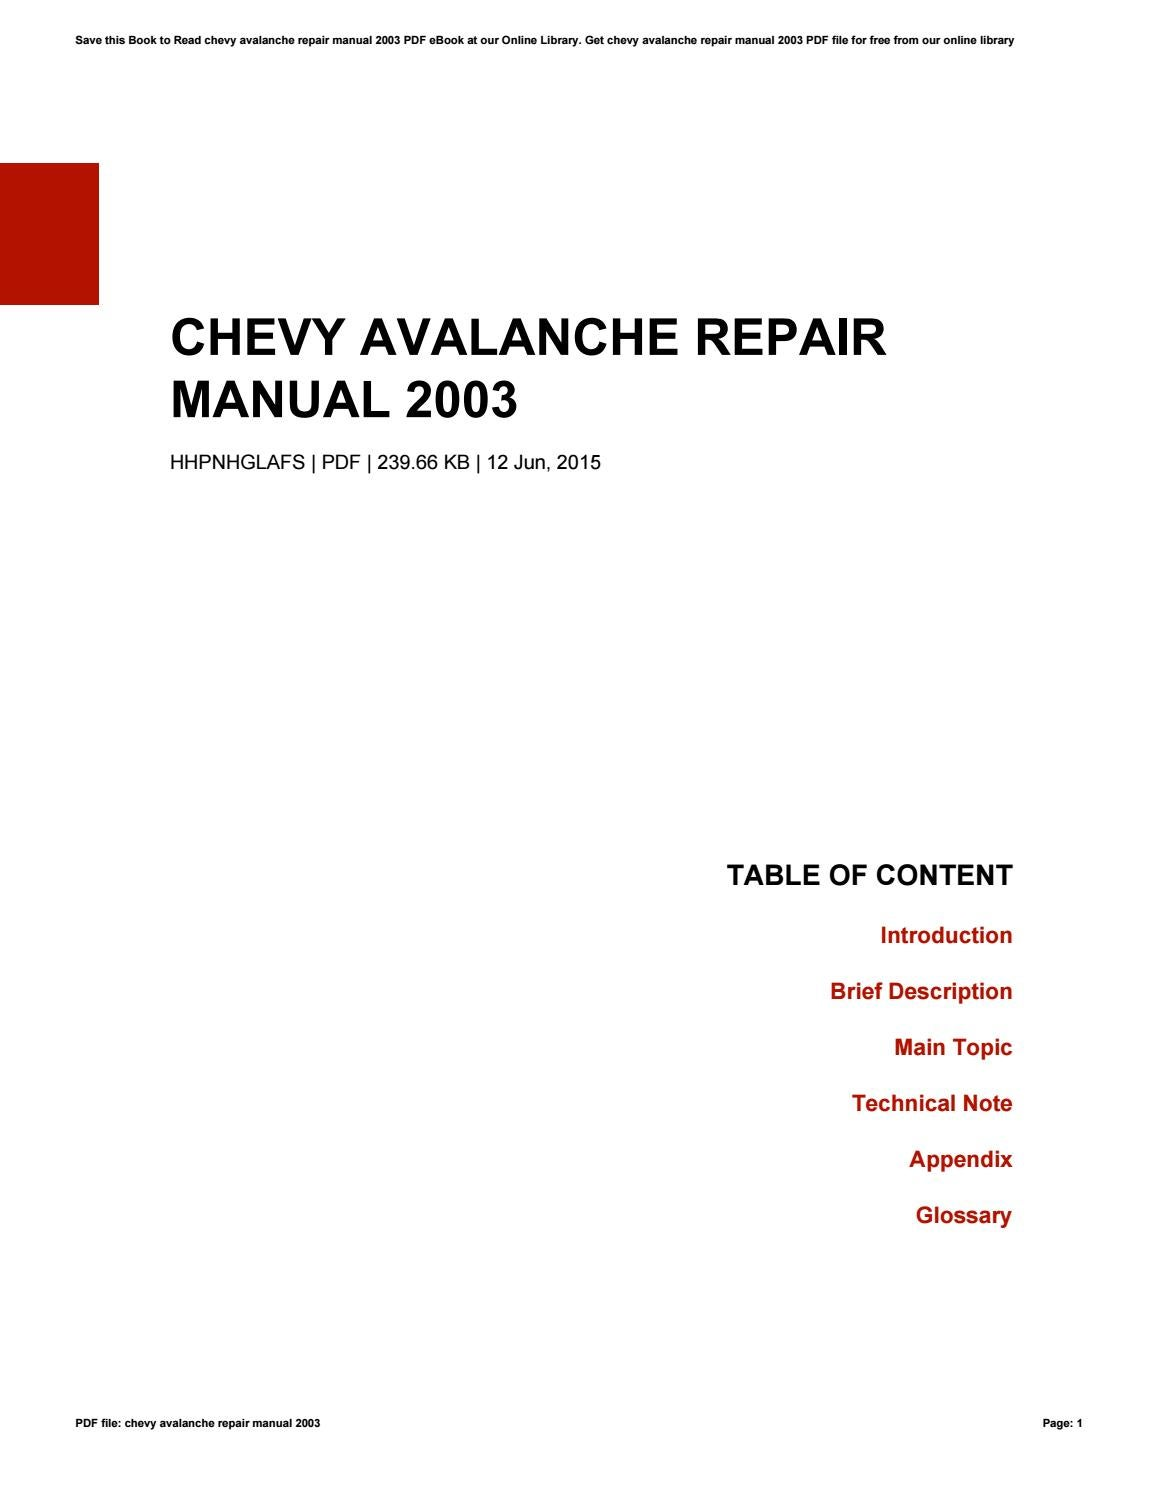 Chevy avalanche repair manual 2003 by StarRodriguez1713